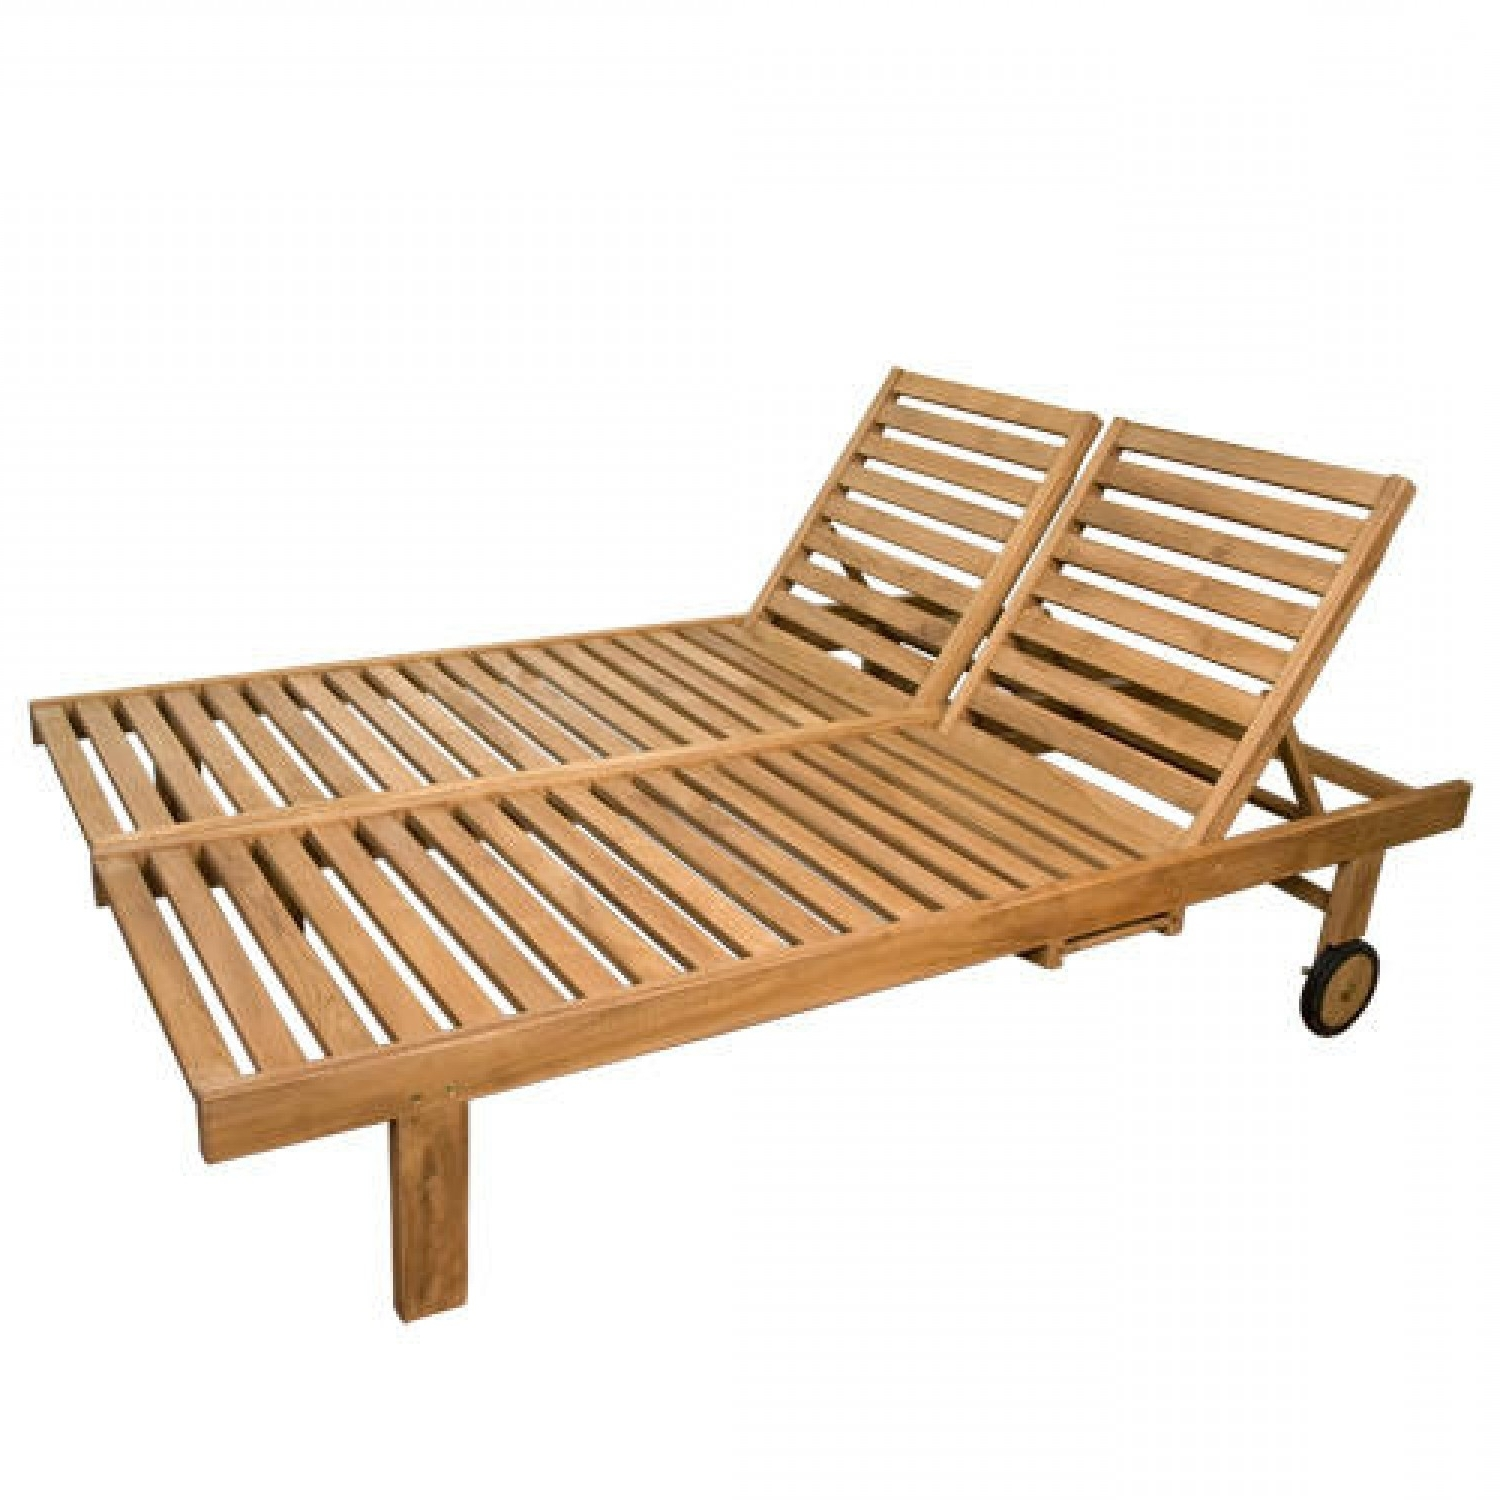 Teak Chaises Regarding Well Known Convertible Chair : Outdoor Dining Chairs Teak Chaise Lounge (View 12 of 15)